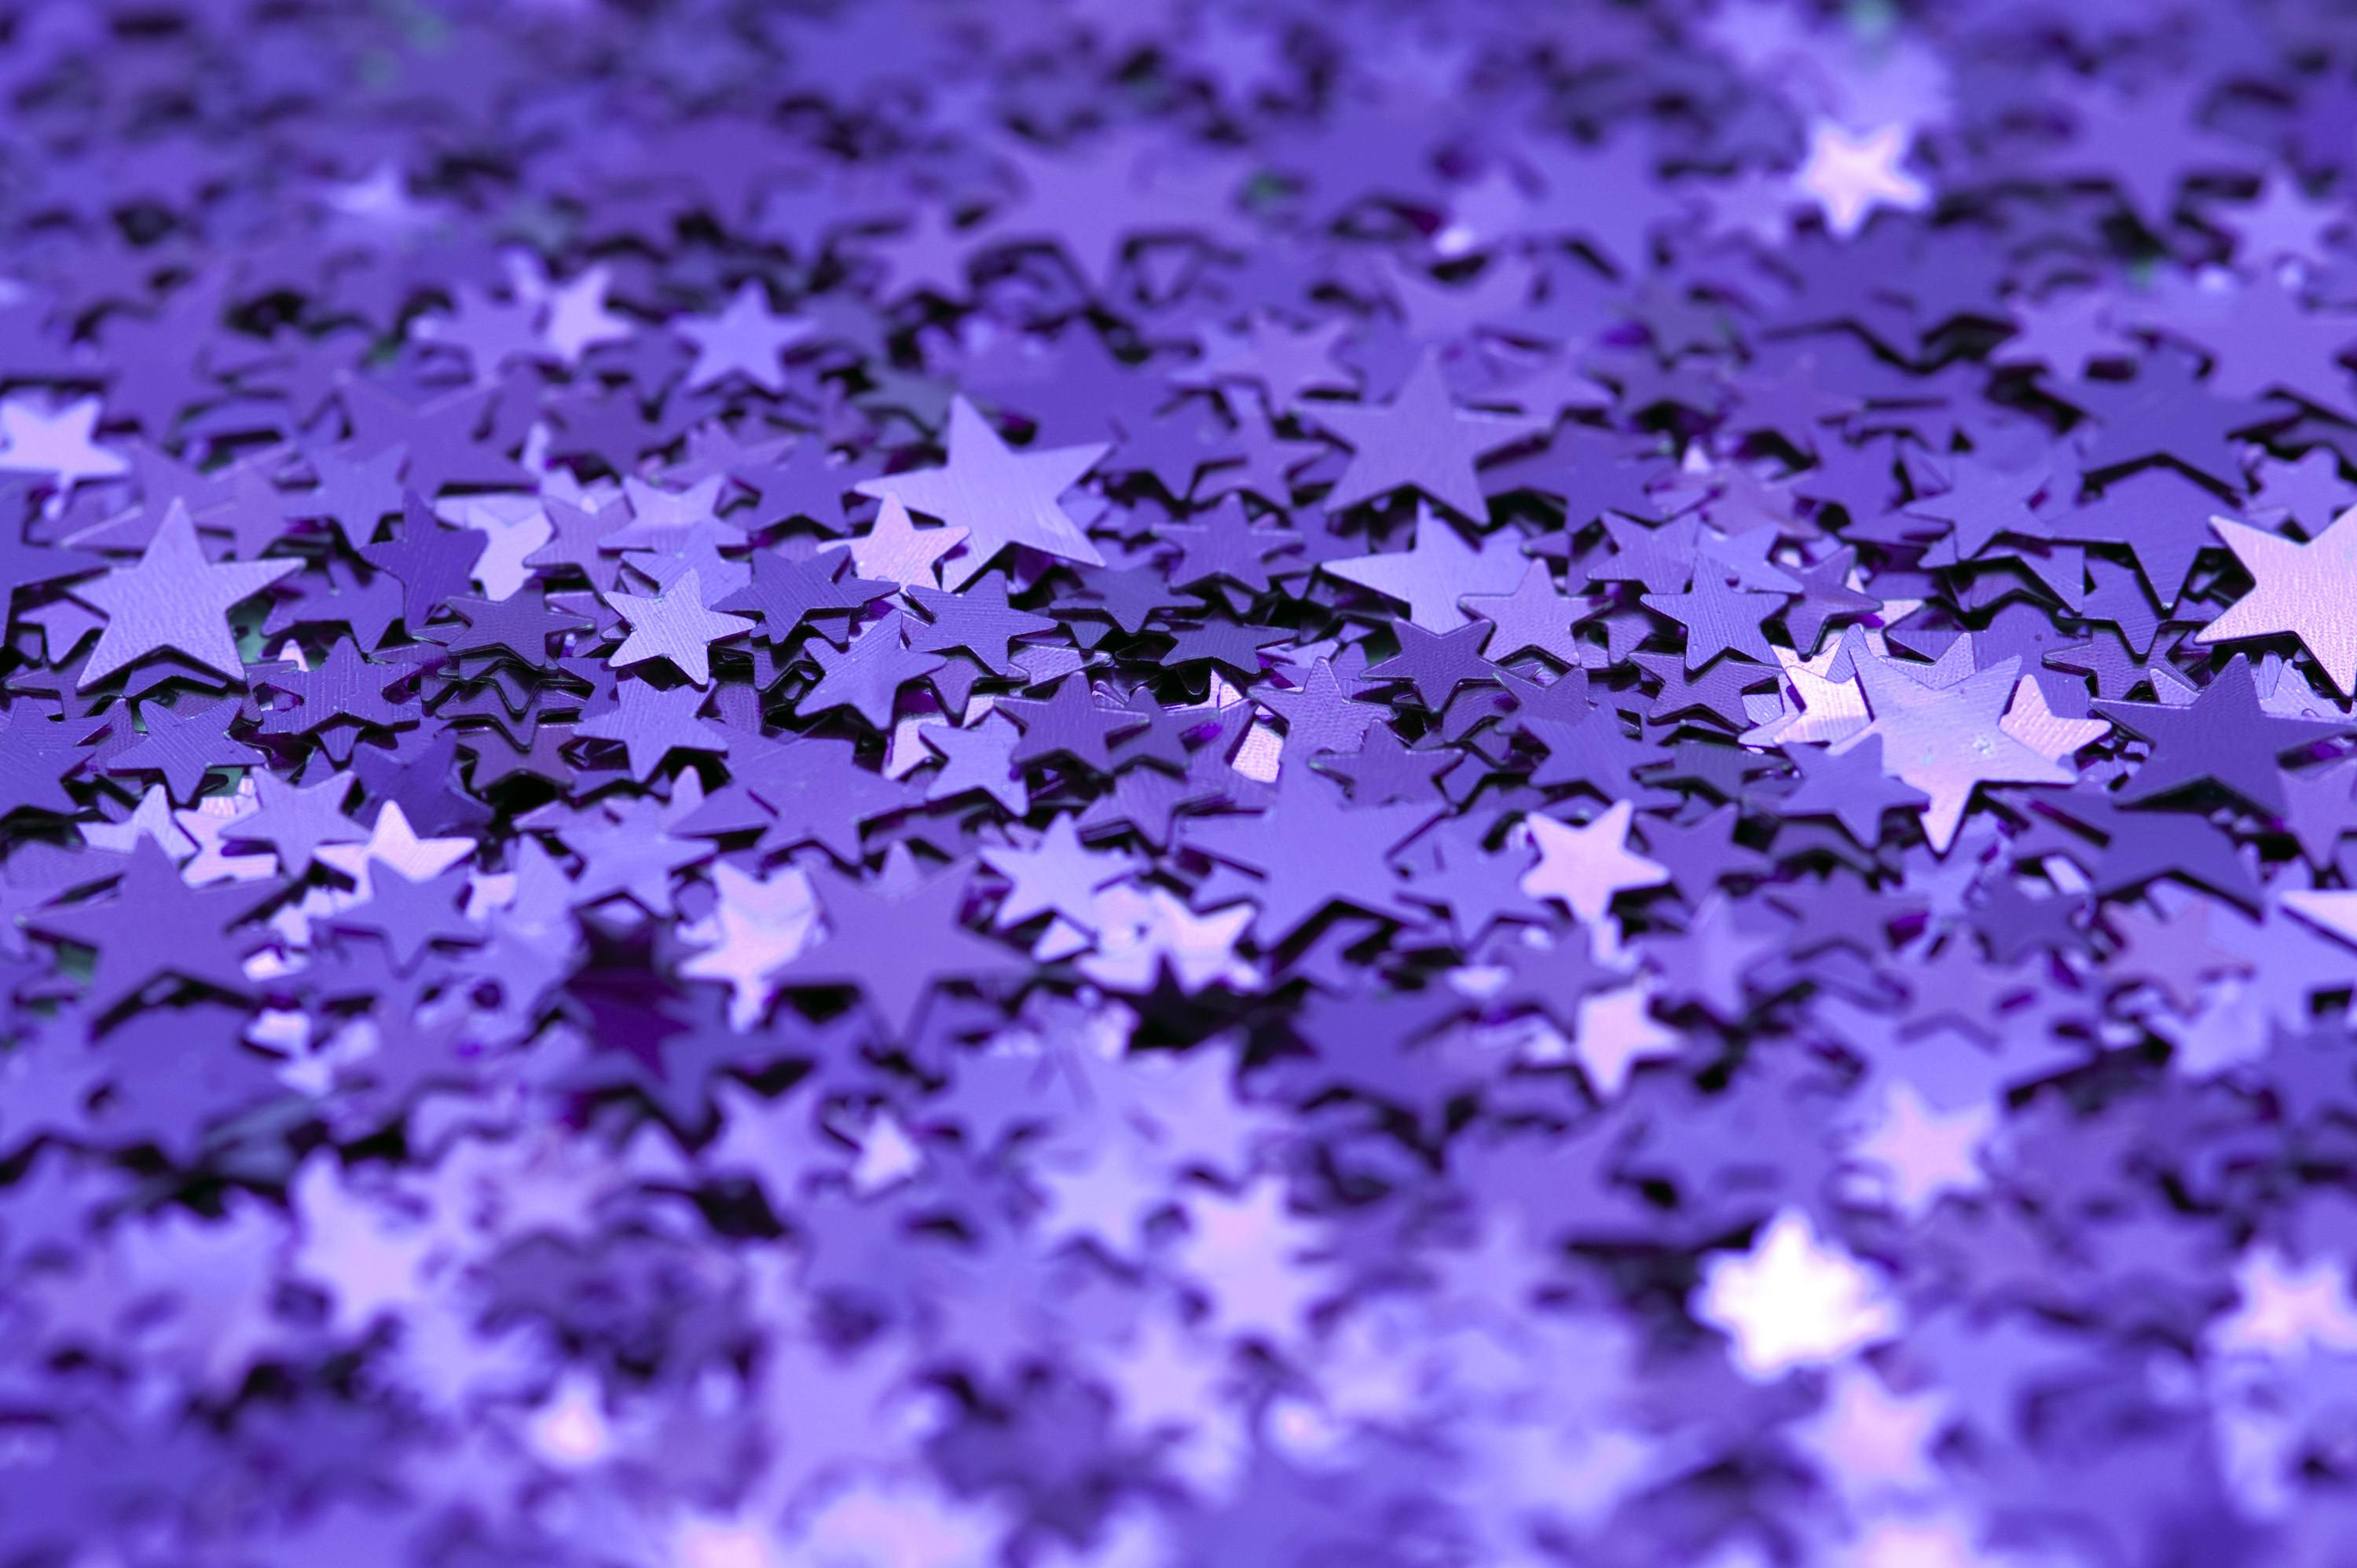 Purple water wallpapers and background images for all your devices. Free Glitter Backgrounds - Wallpaper Cave